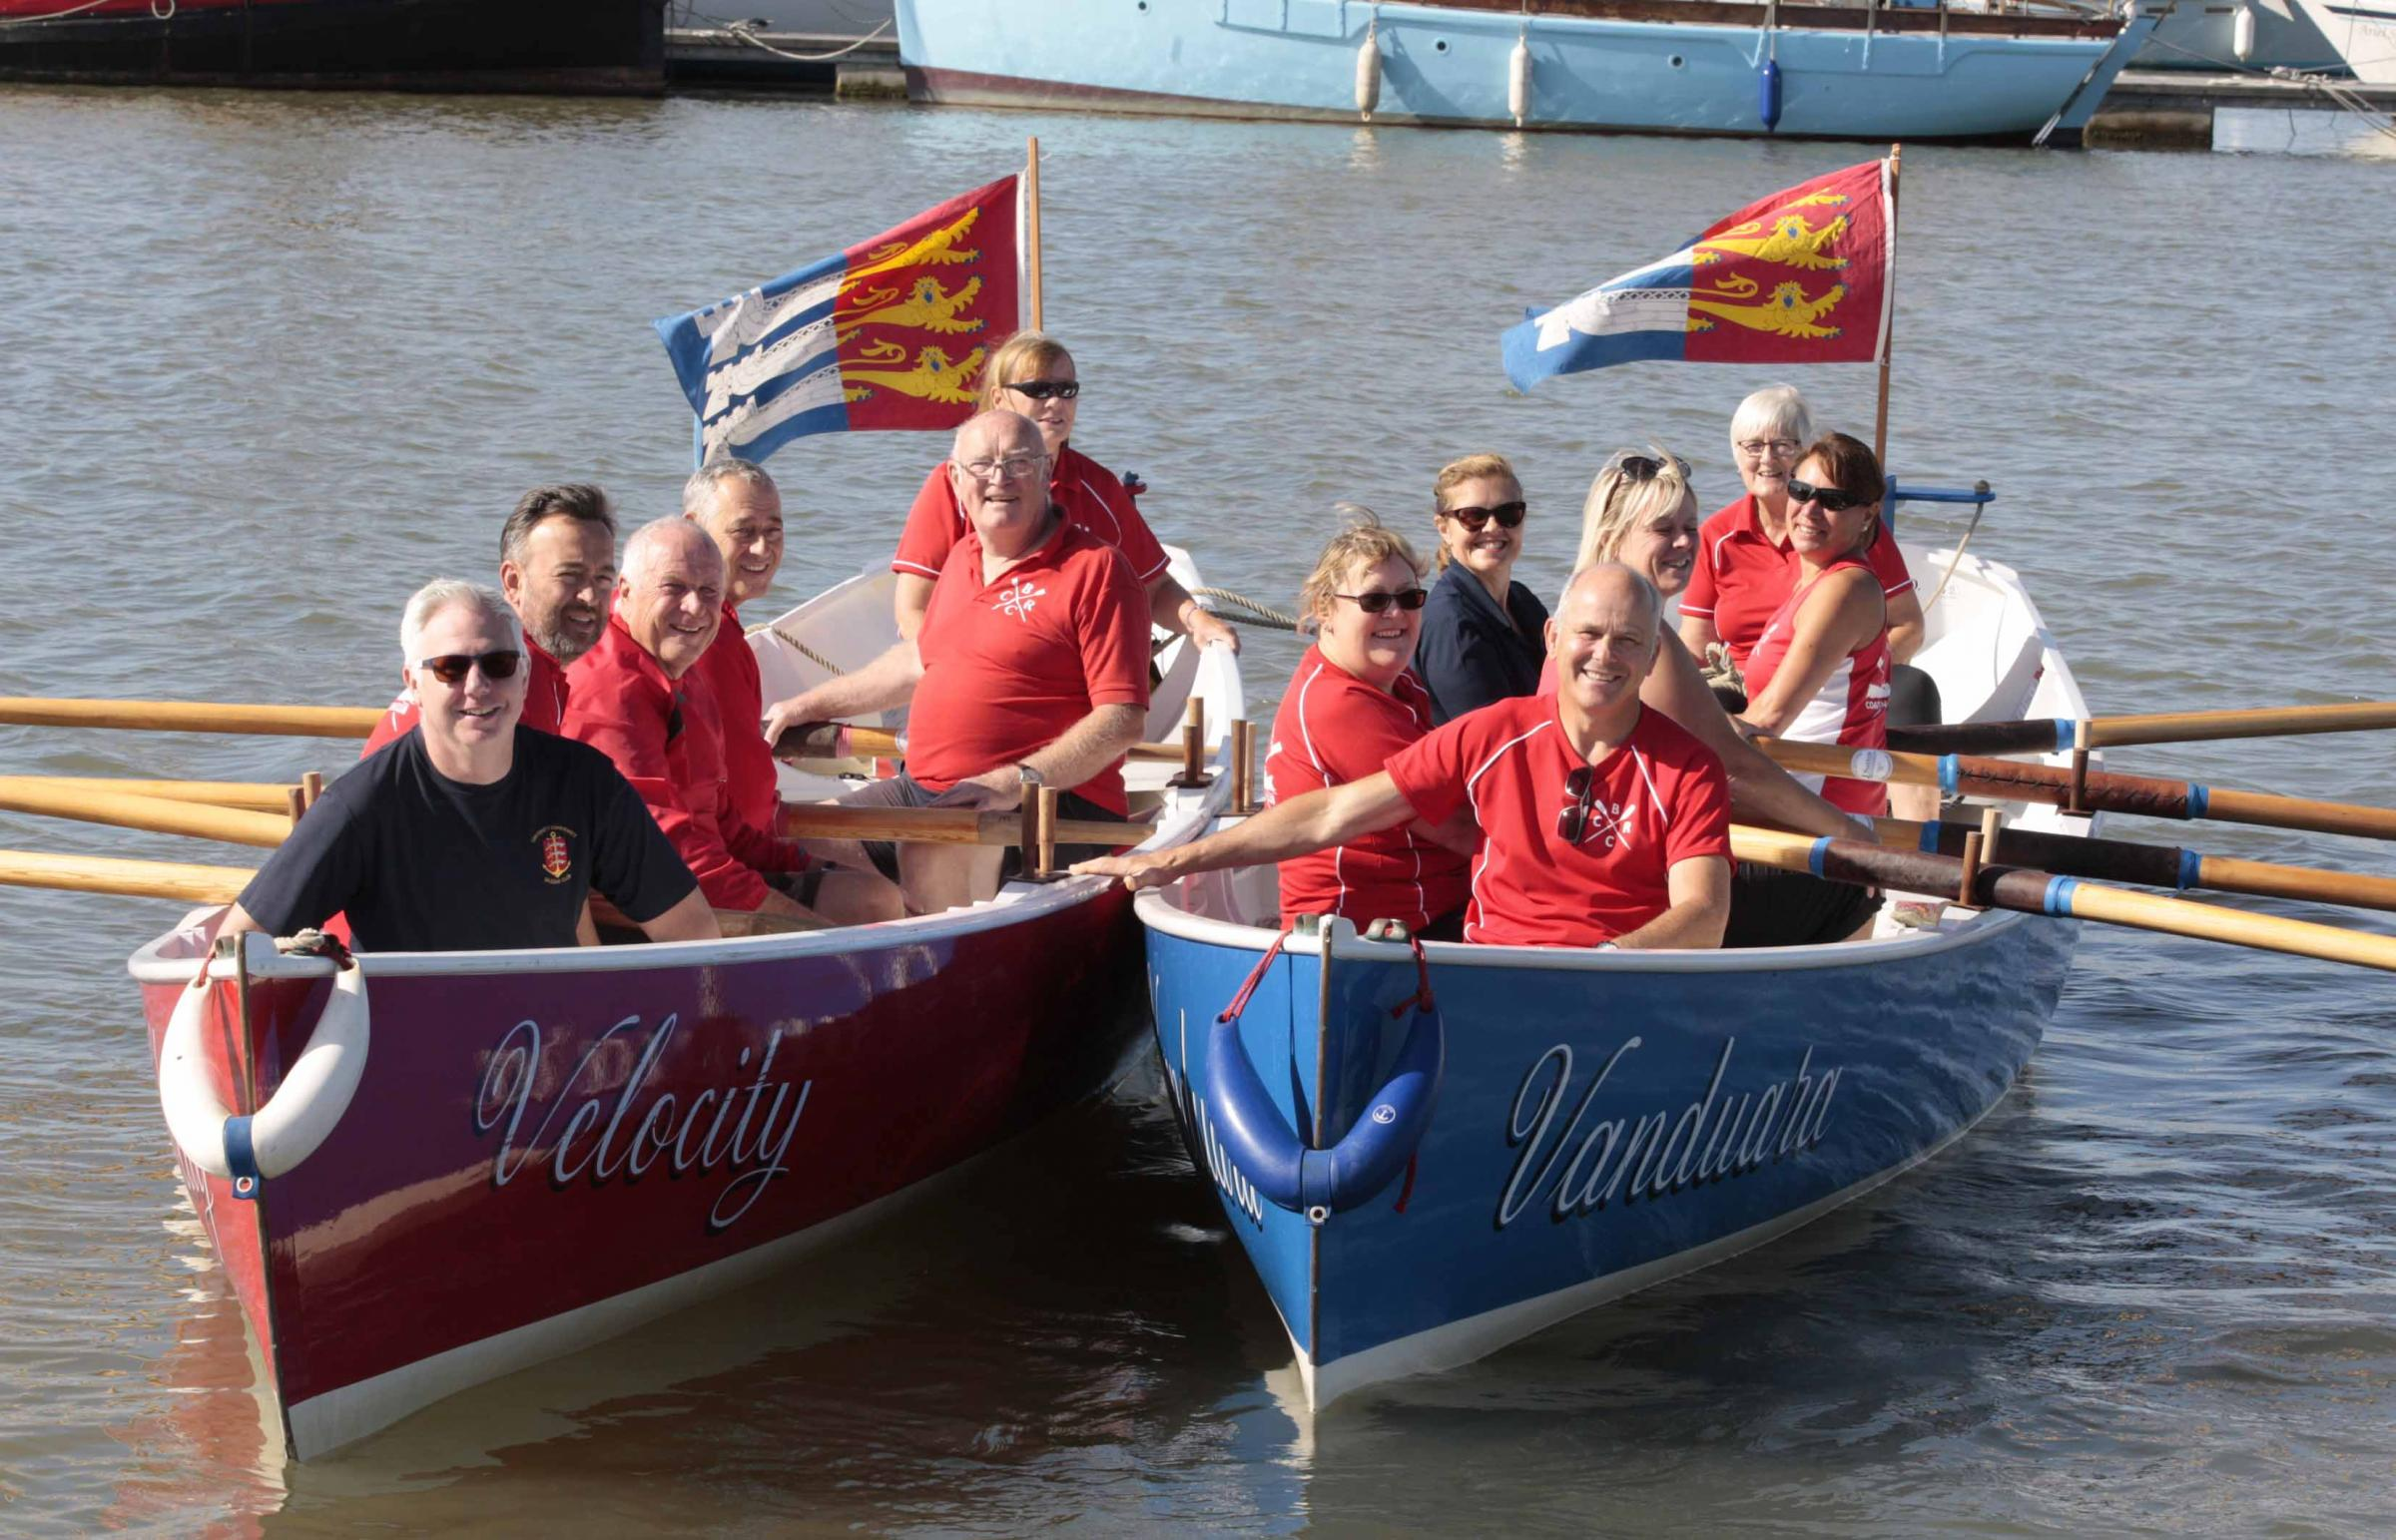 Rowers prepare for fundraising river race